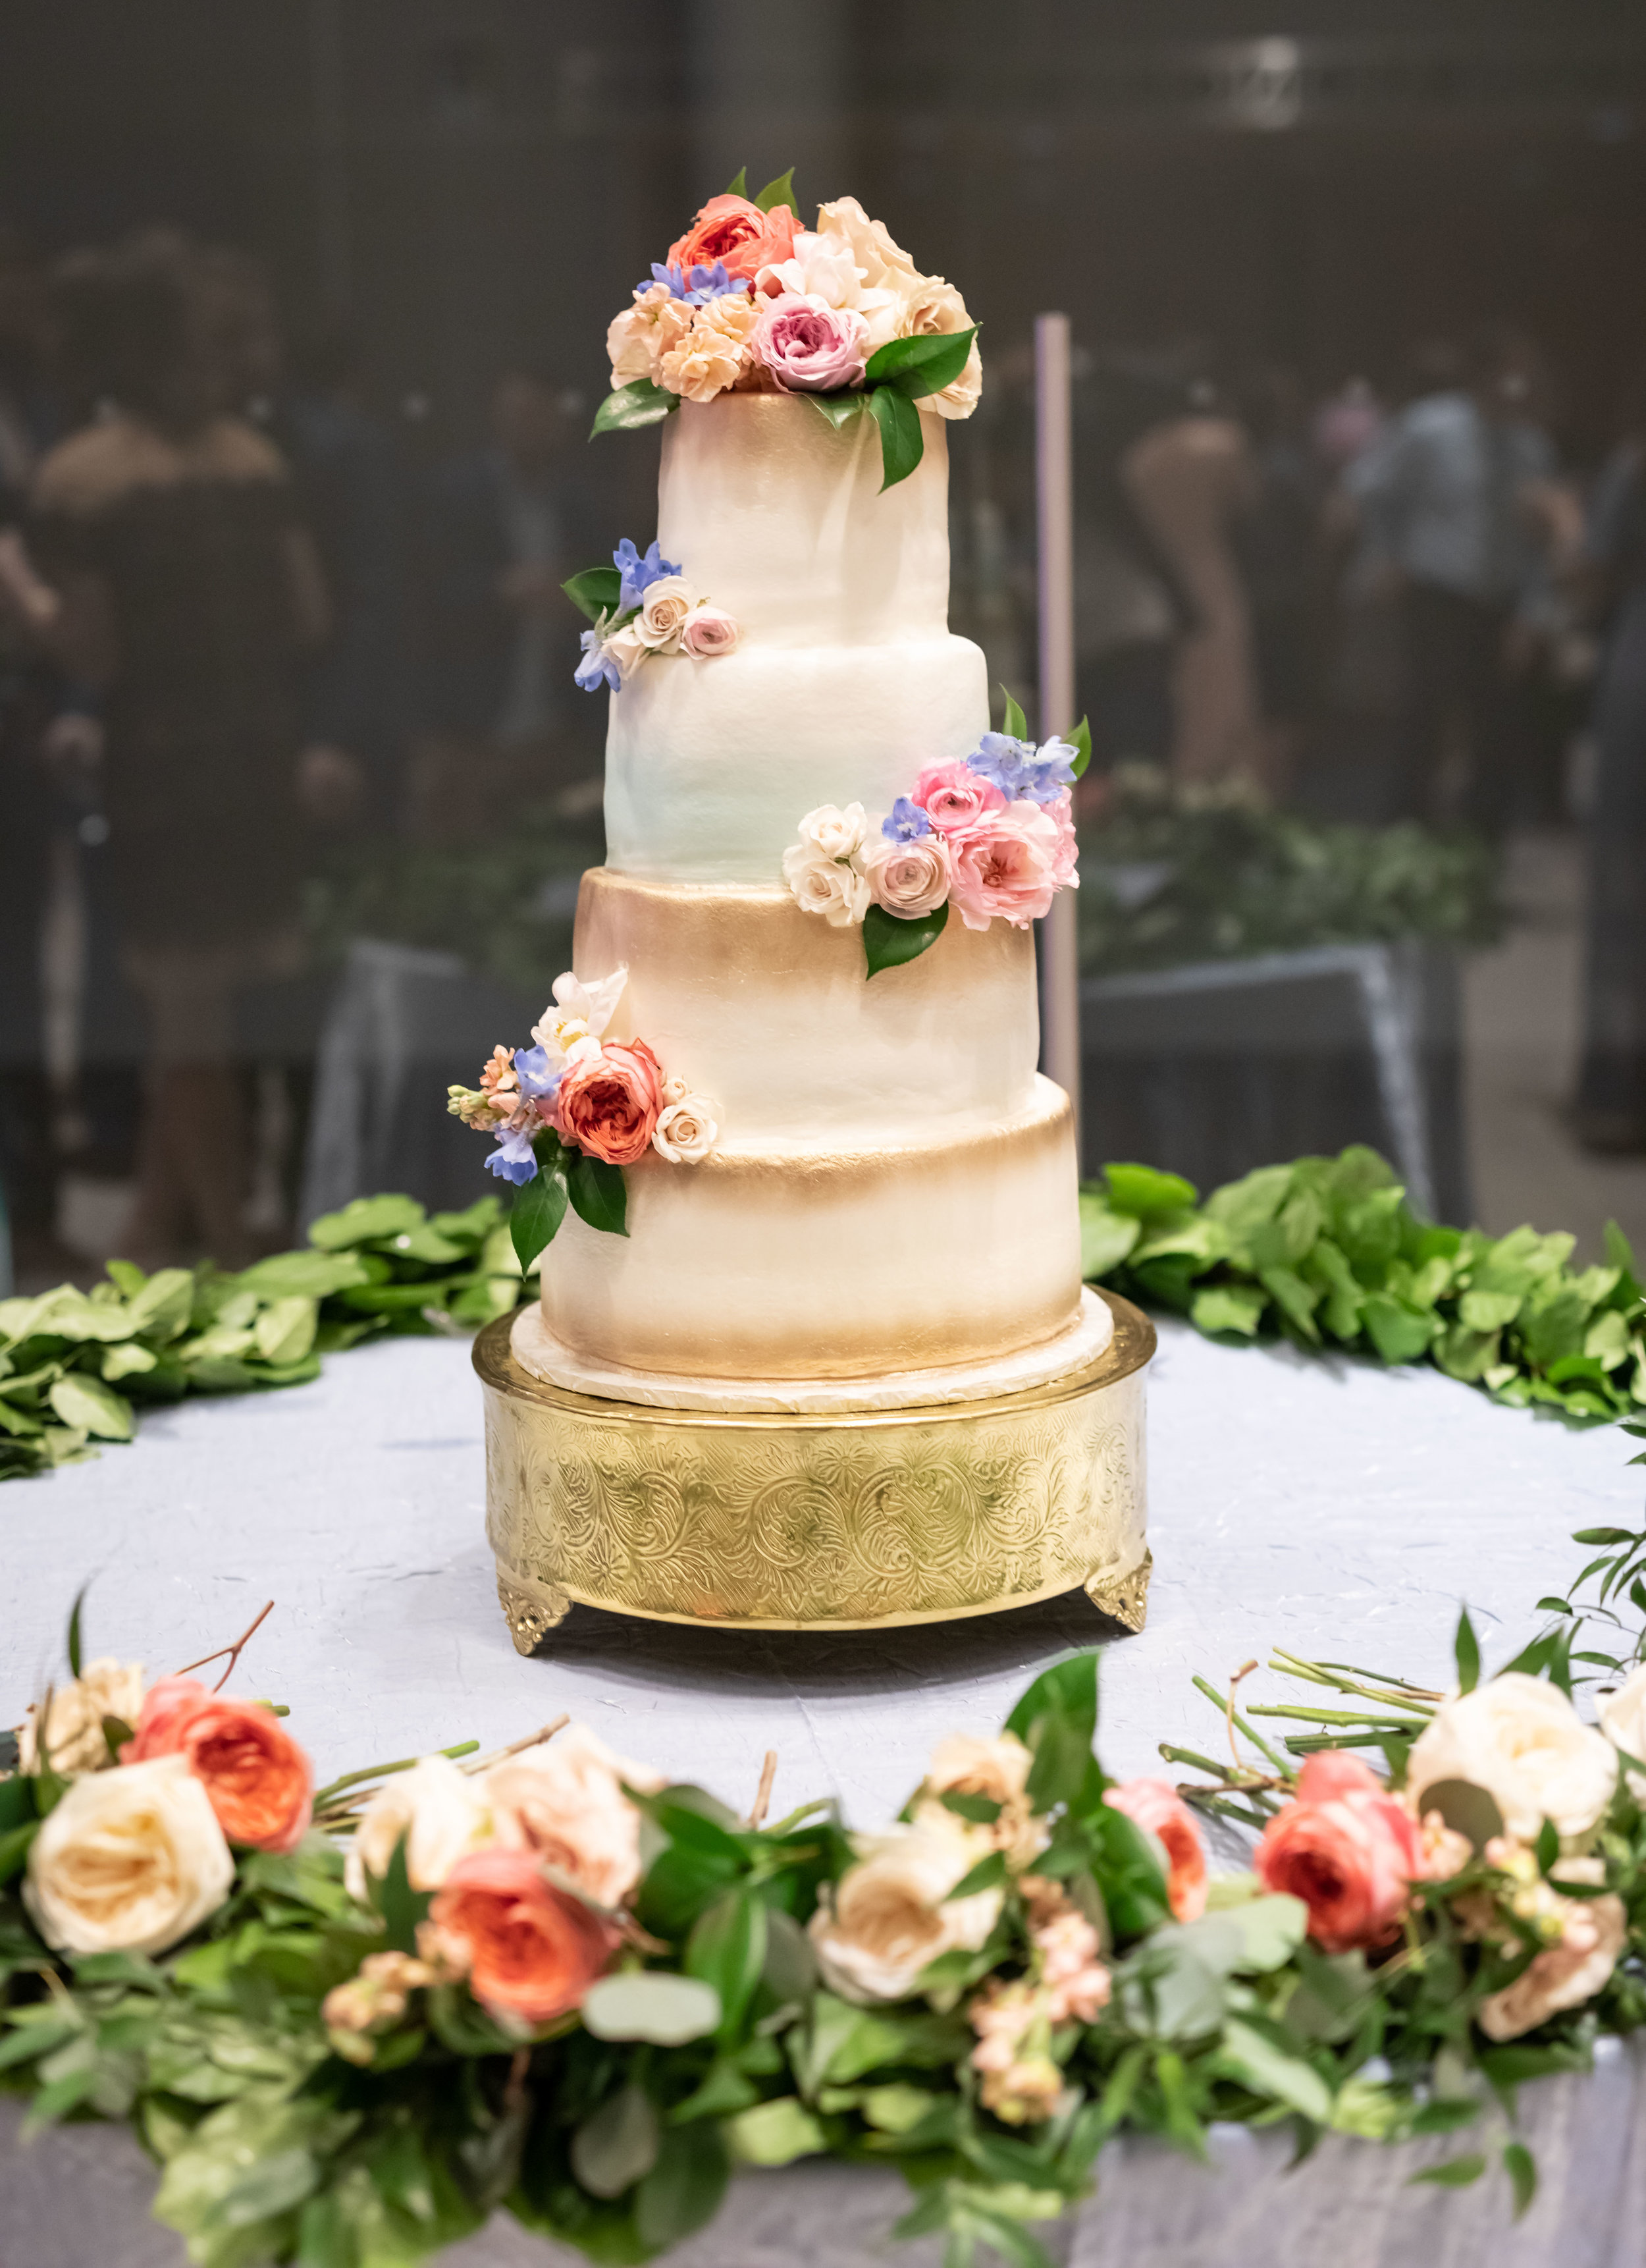 Southern Fete, Southern Wedding, Sugar Belle by Elise, Wedding Cake, Jay Faugot Photography, Root Floral Design